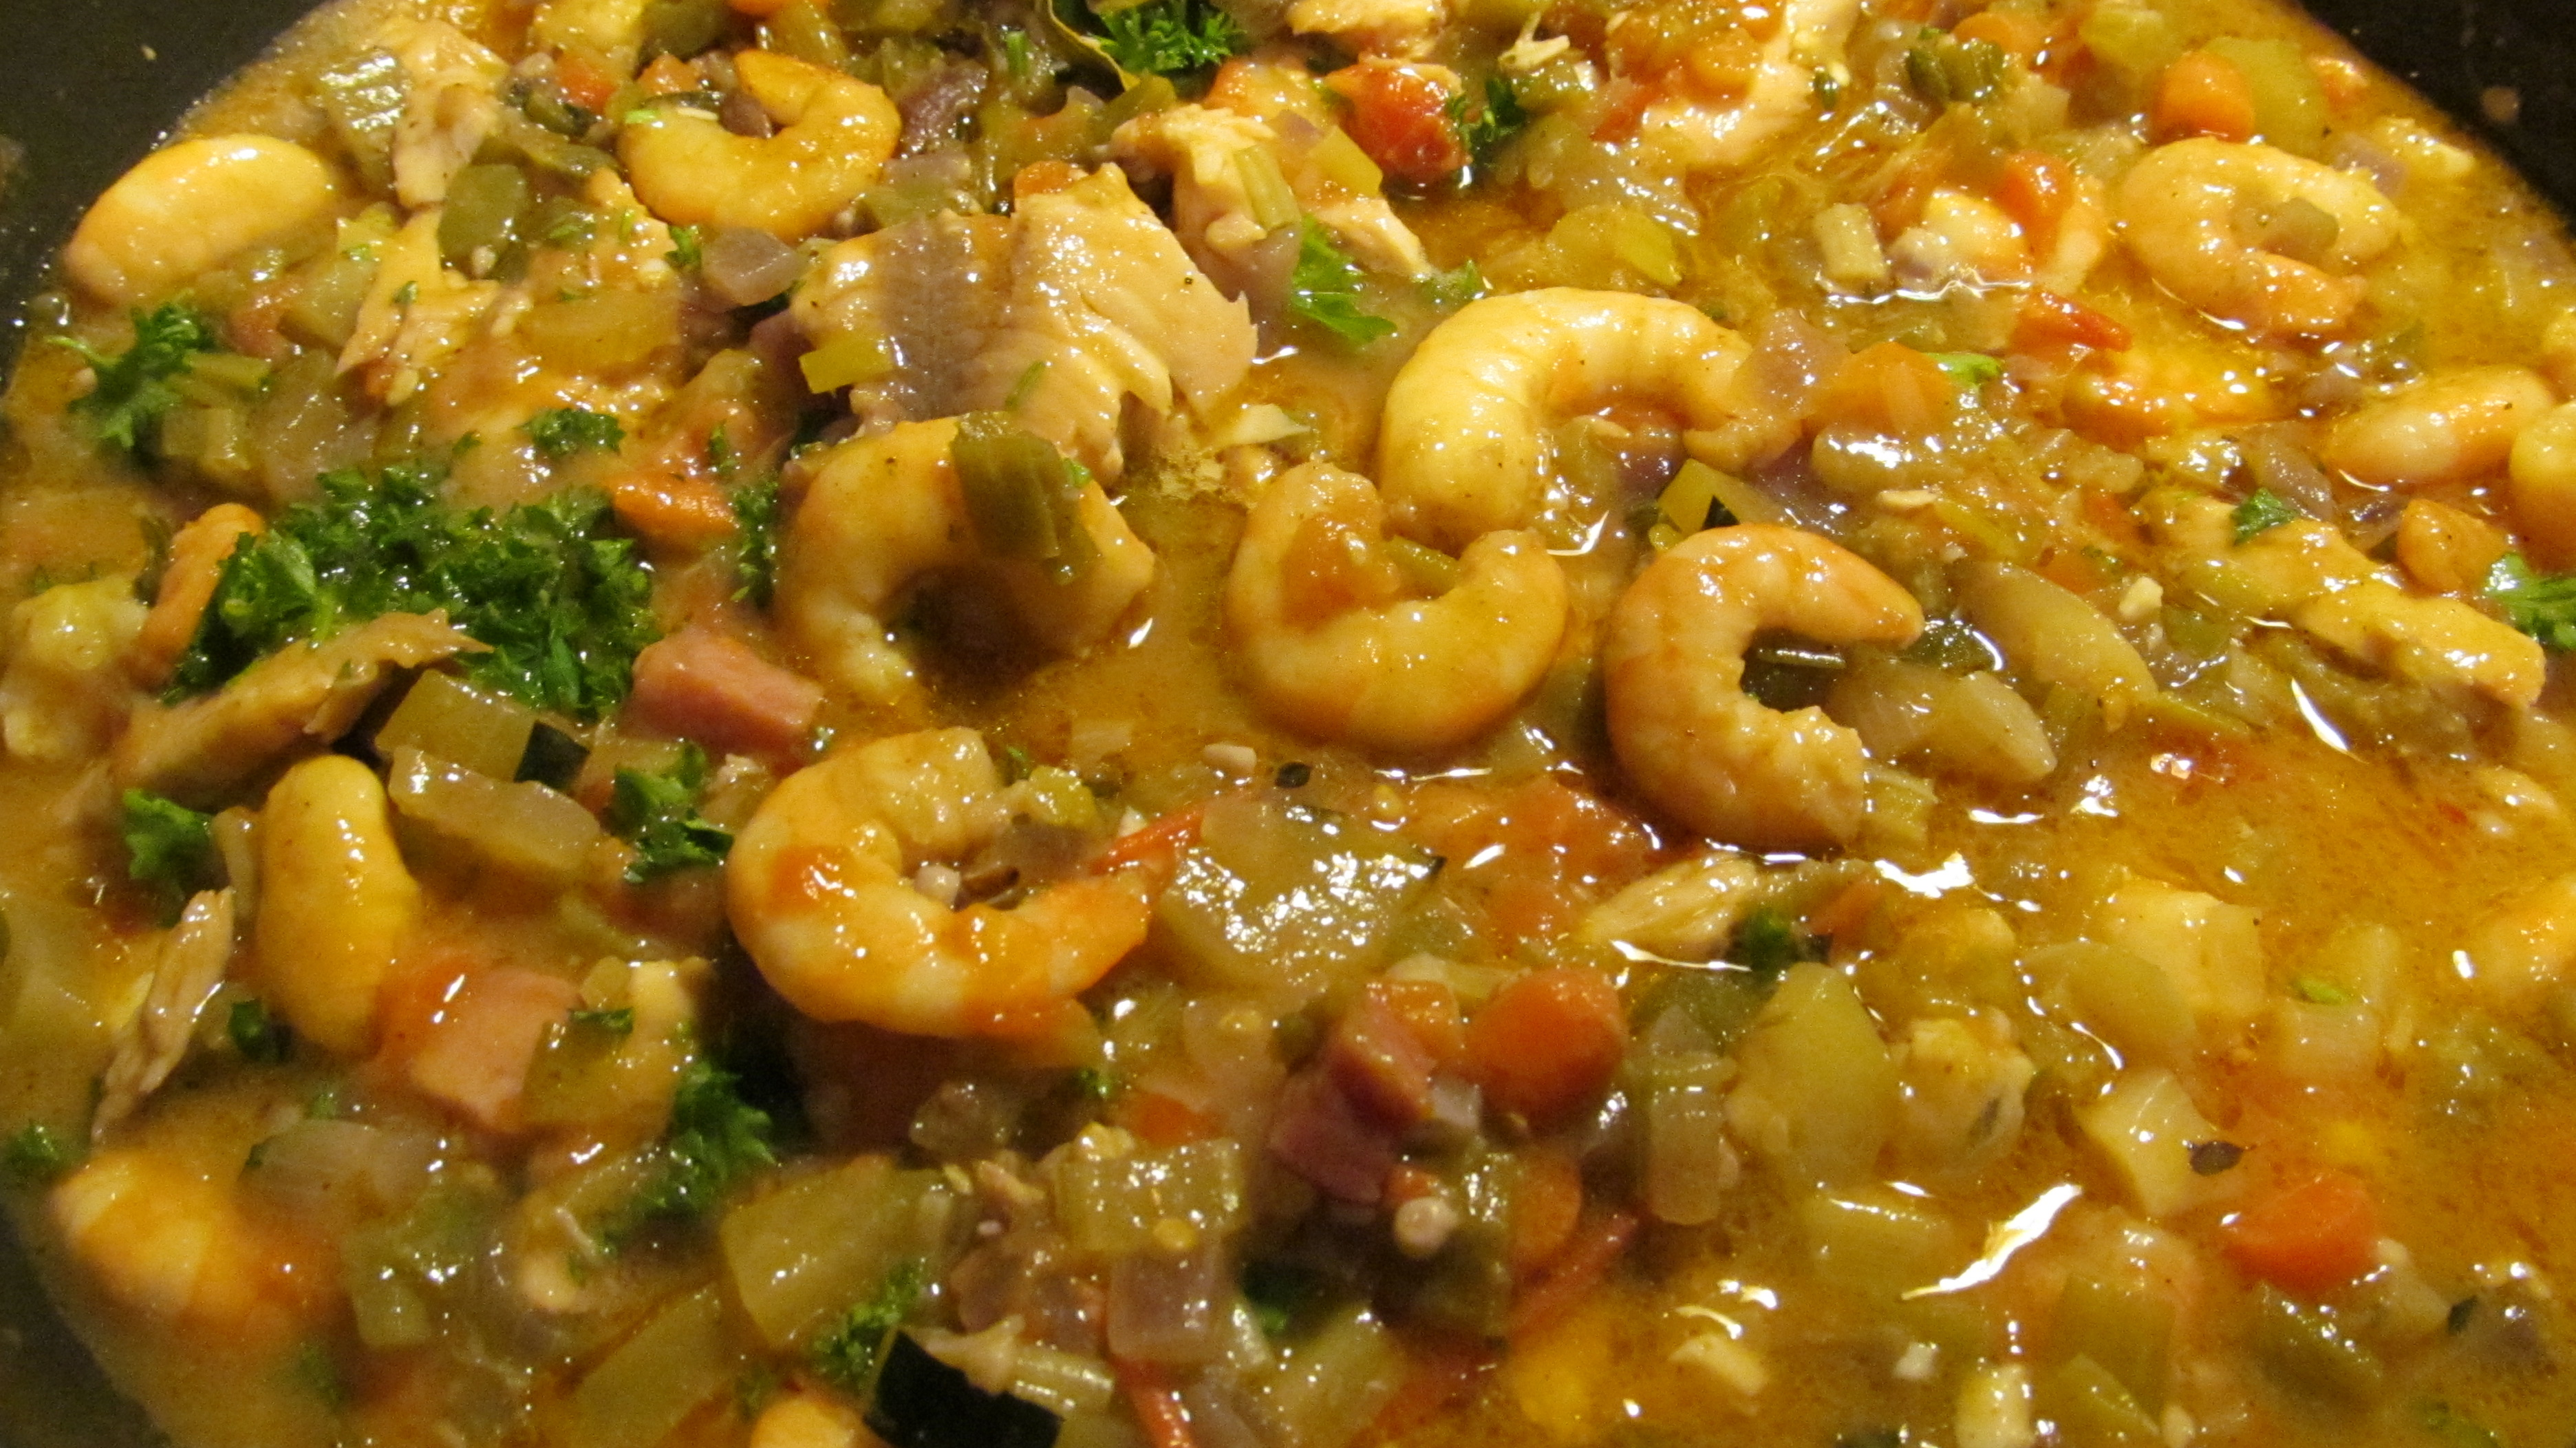 gumbo-dish-of-louisiana-secret-world